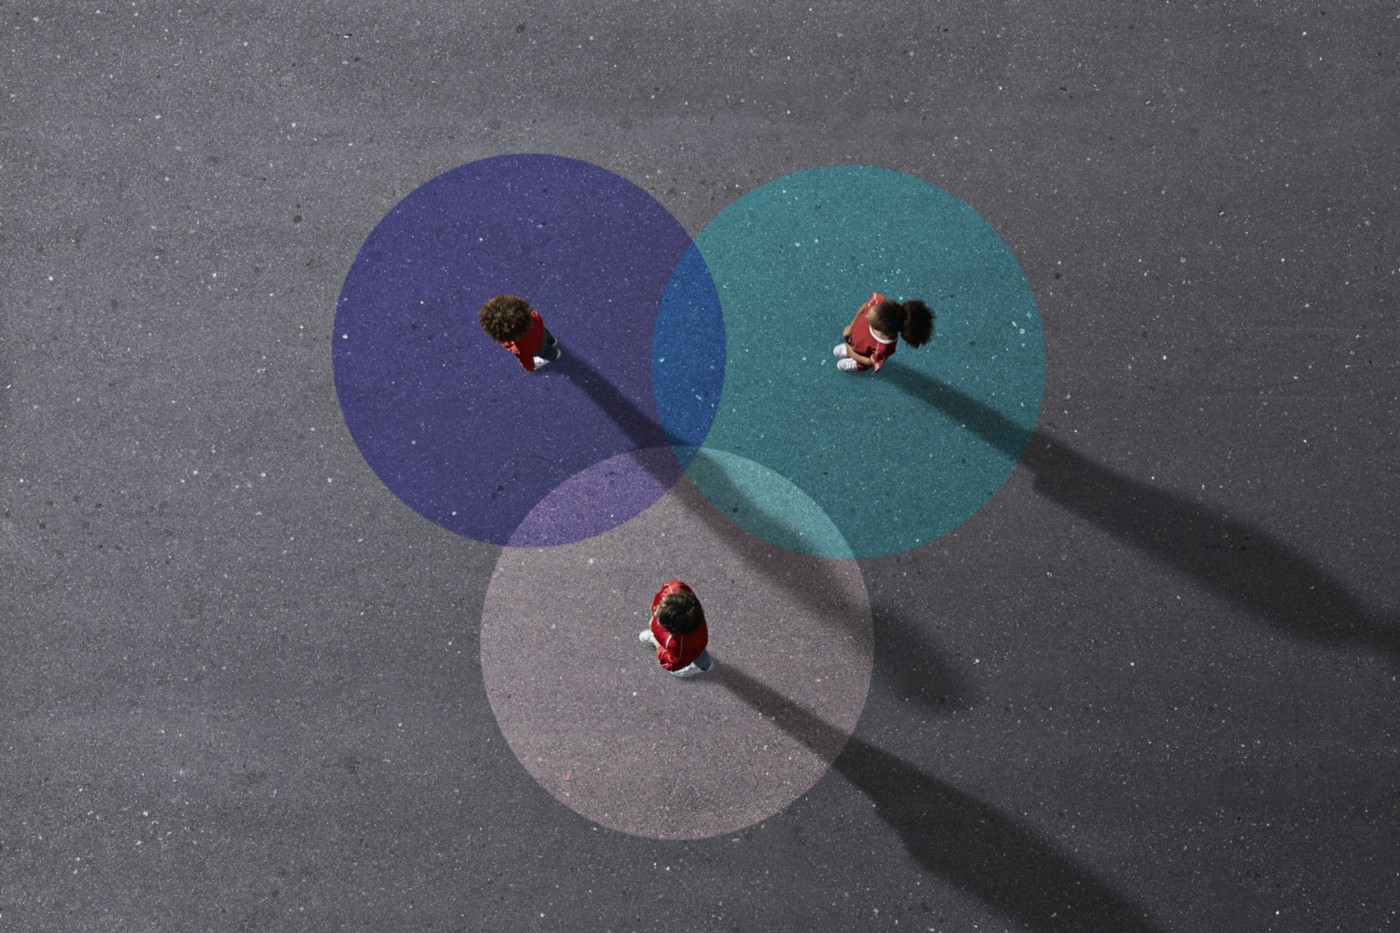 An aerial view of 3 people standing on painted Venn Diagrams.